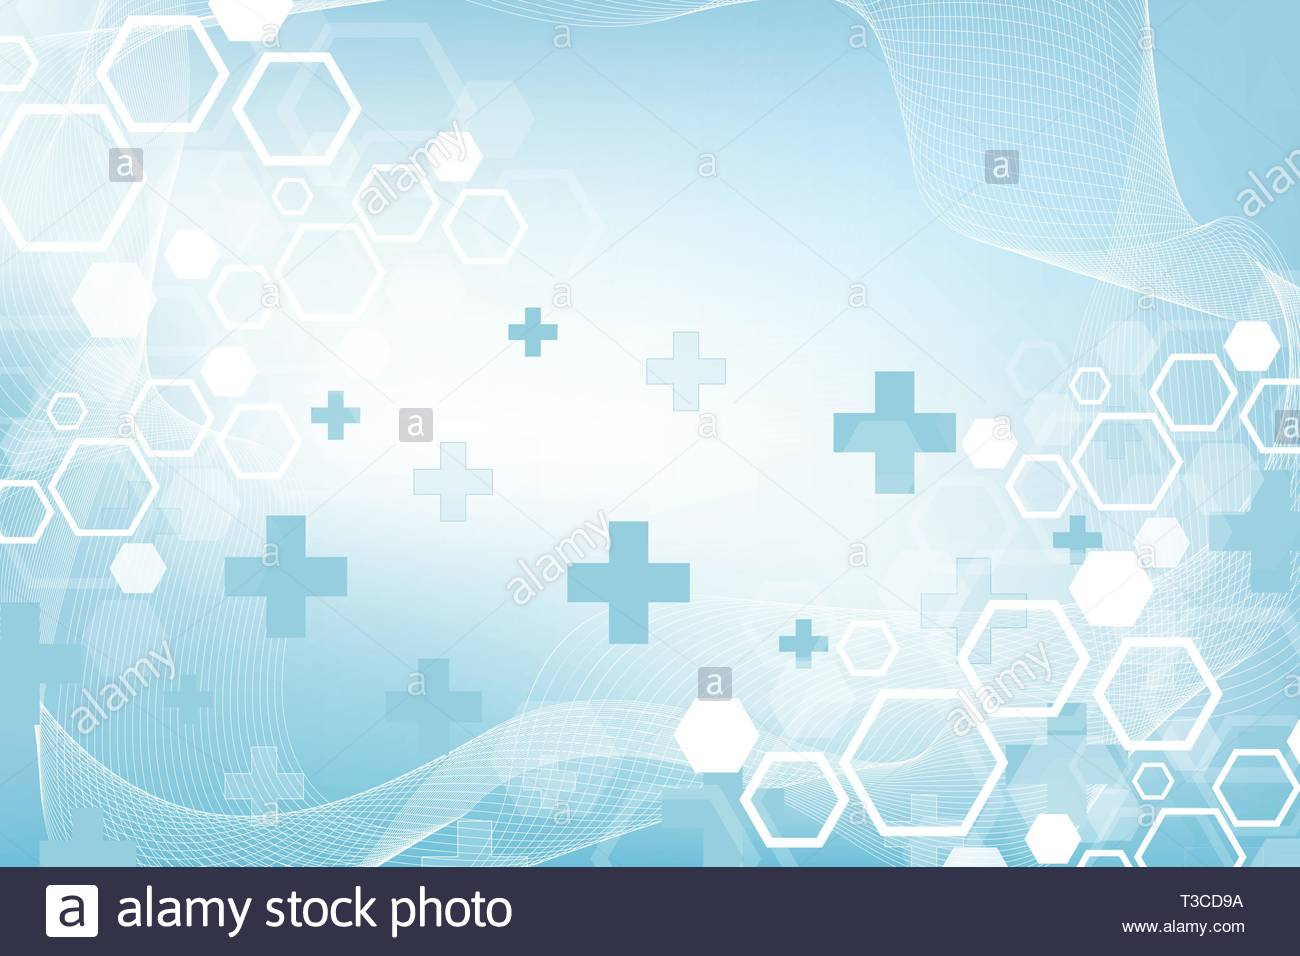 Abstract medical background DNA research molecule genetics 1300x956